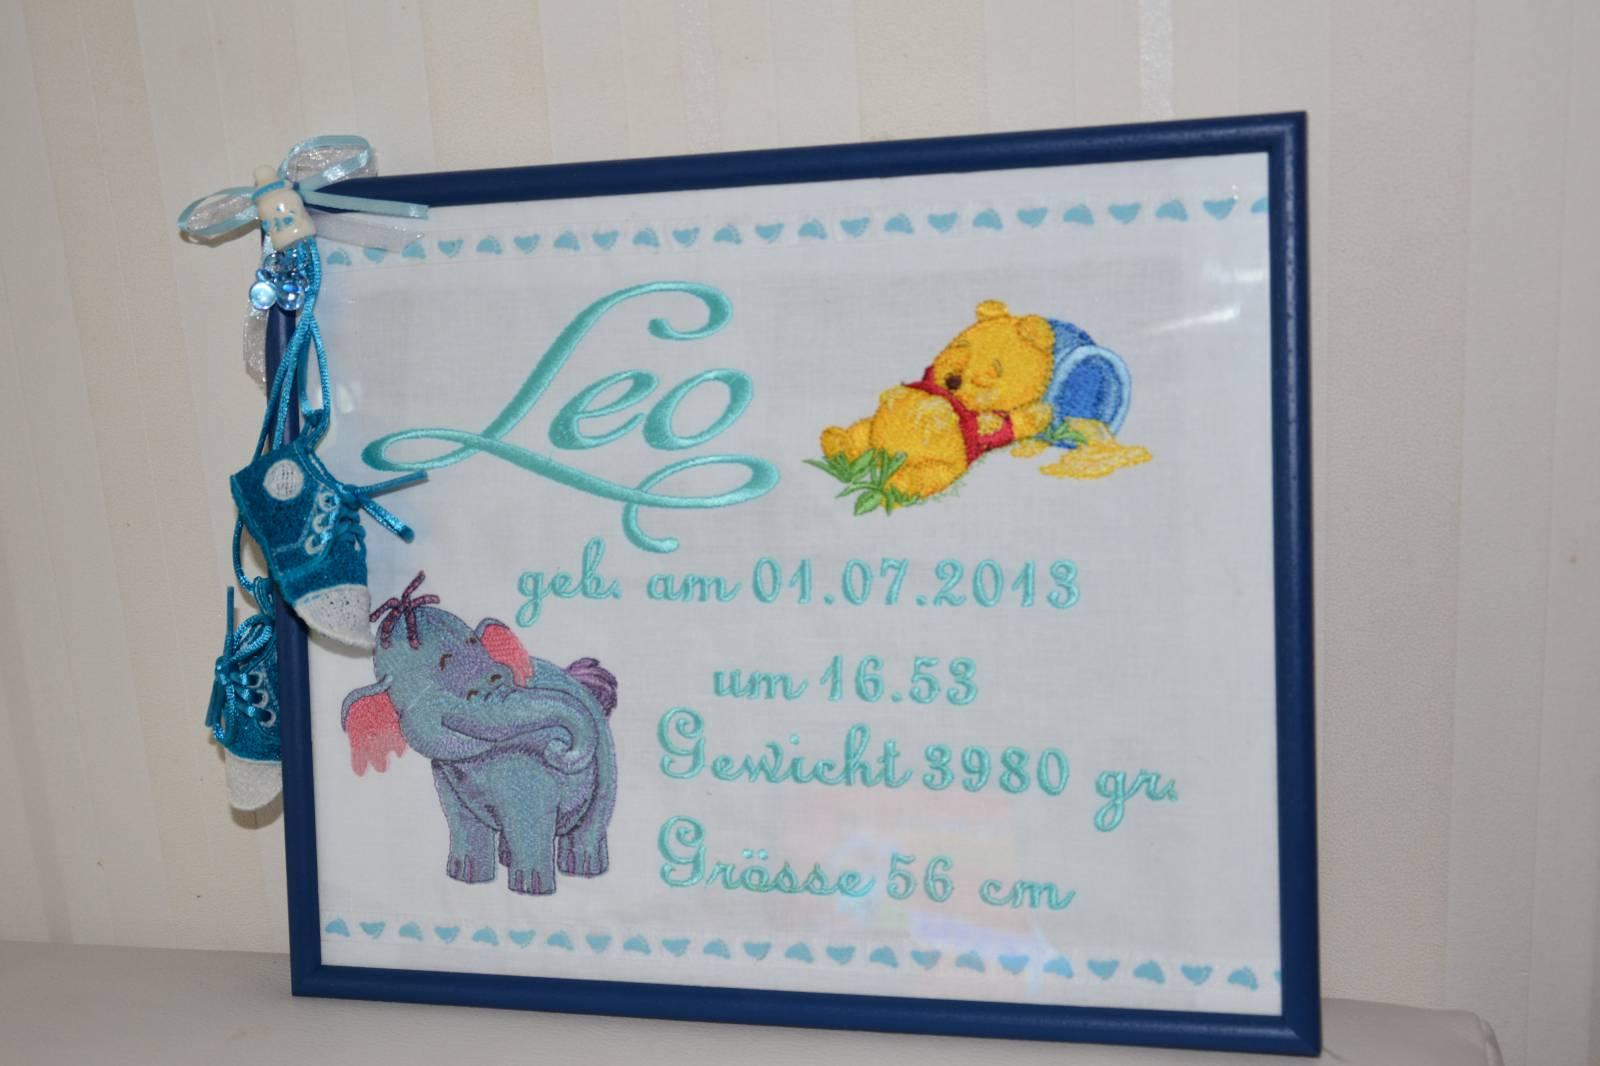 Framed with Winnie Pooh and friends embroidery design